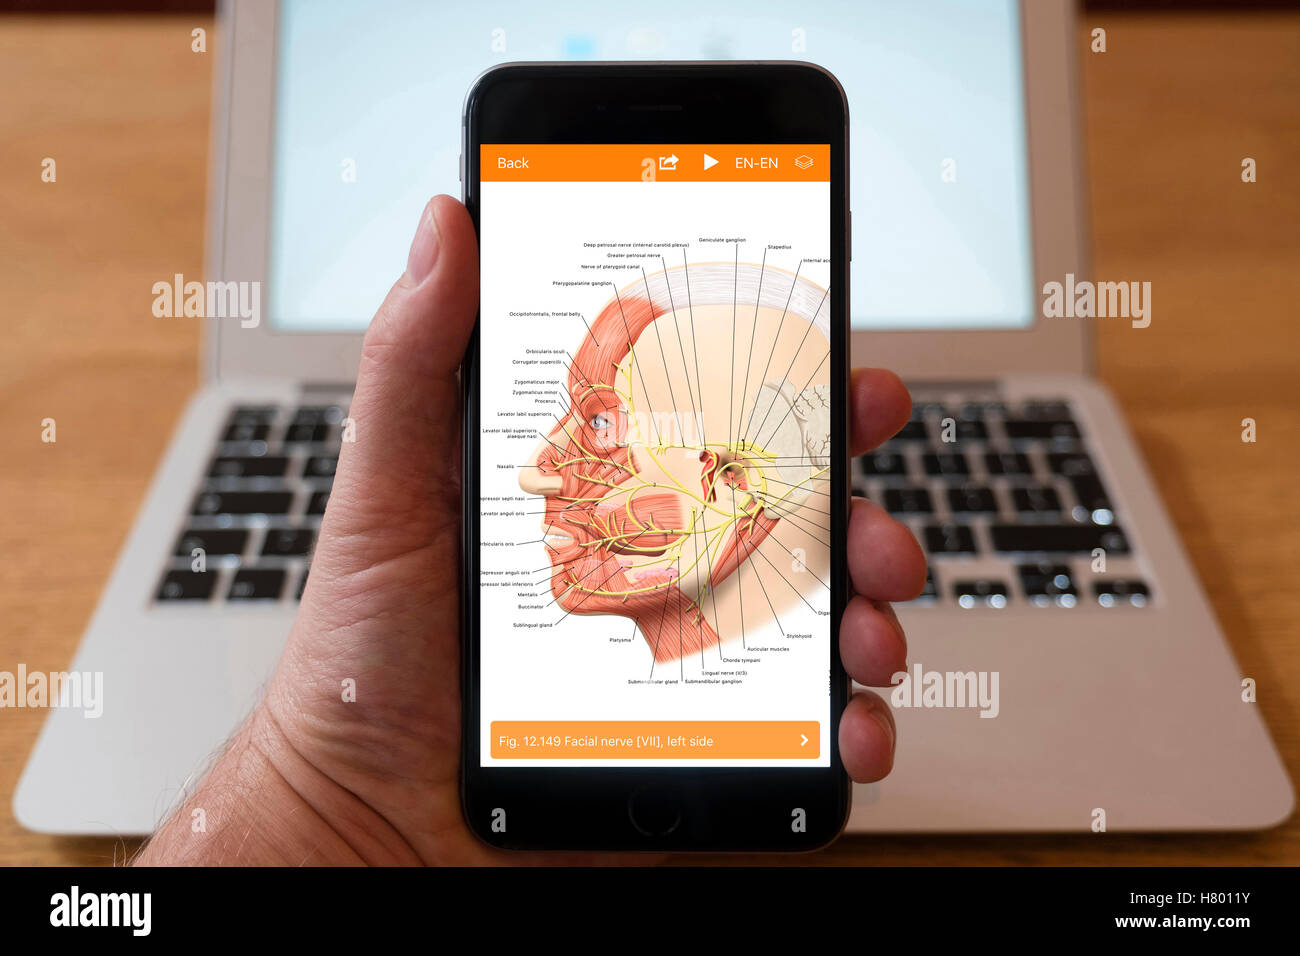 Using iPhone smartphone to display image of human head from human anatomy medical educational app - Stock Image